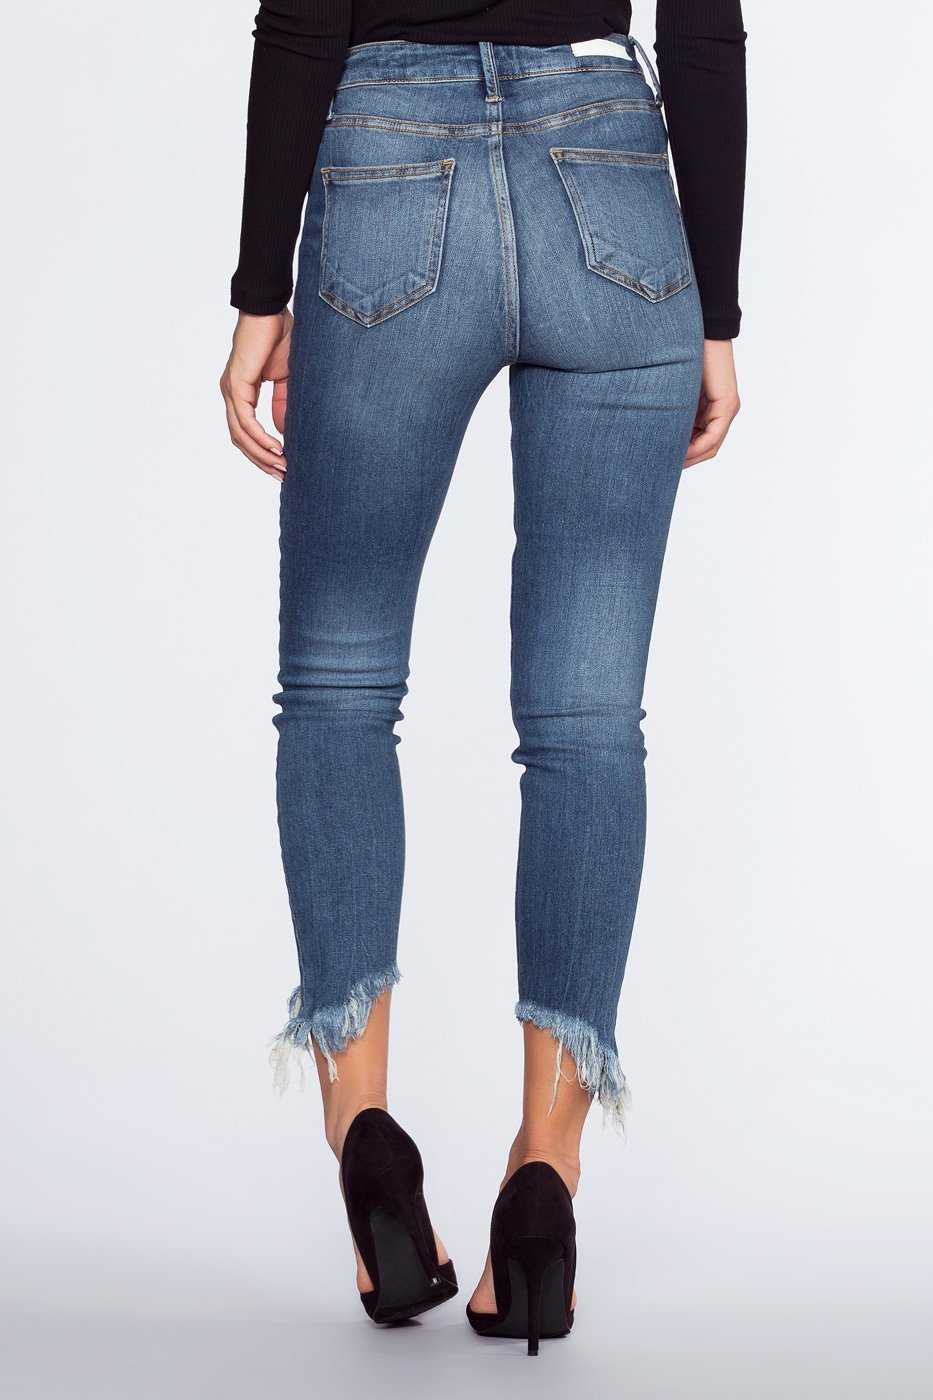 Pants - Kensington Frayed Jeans